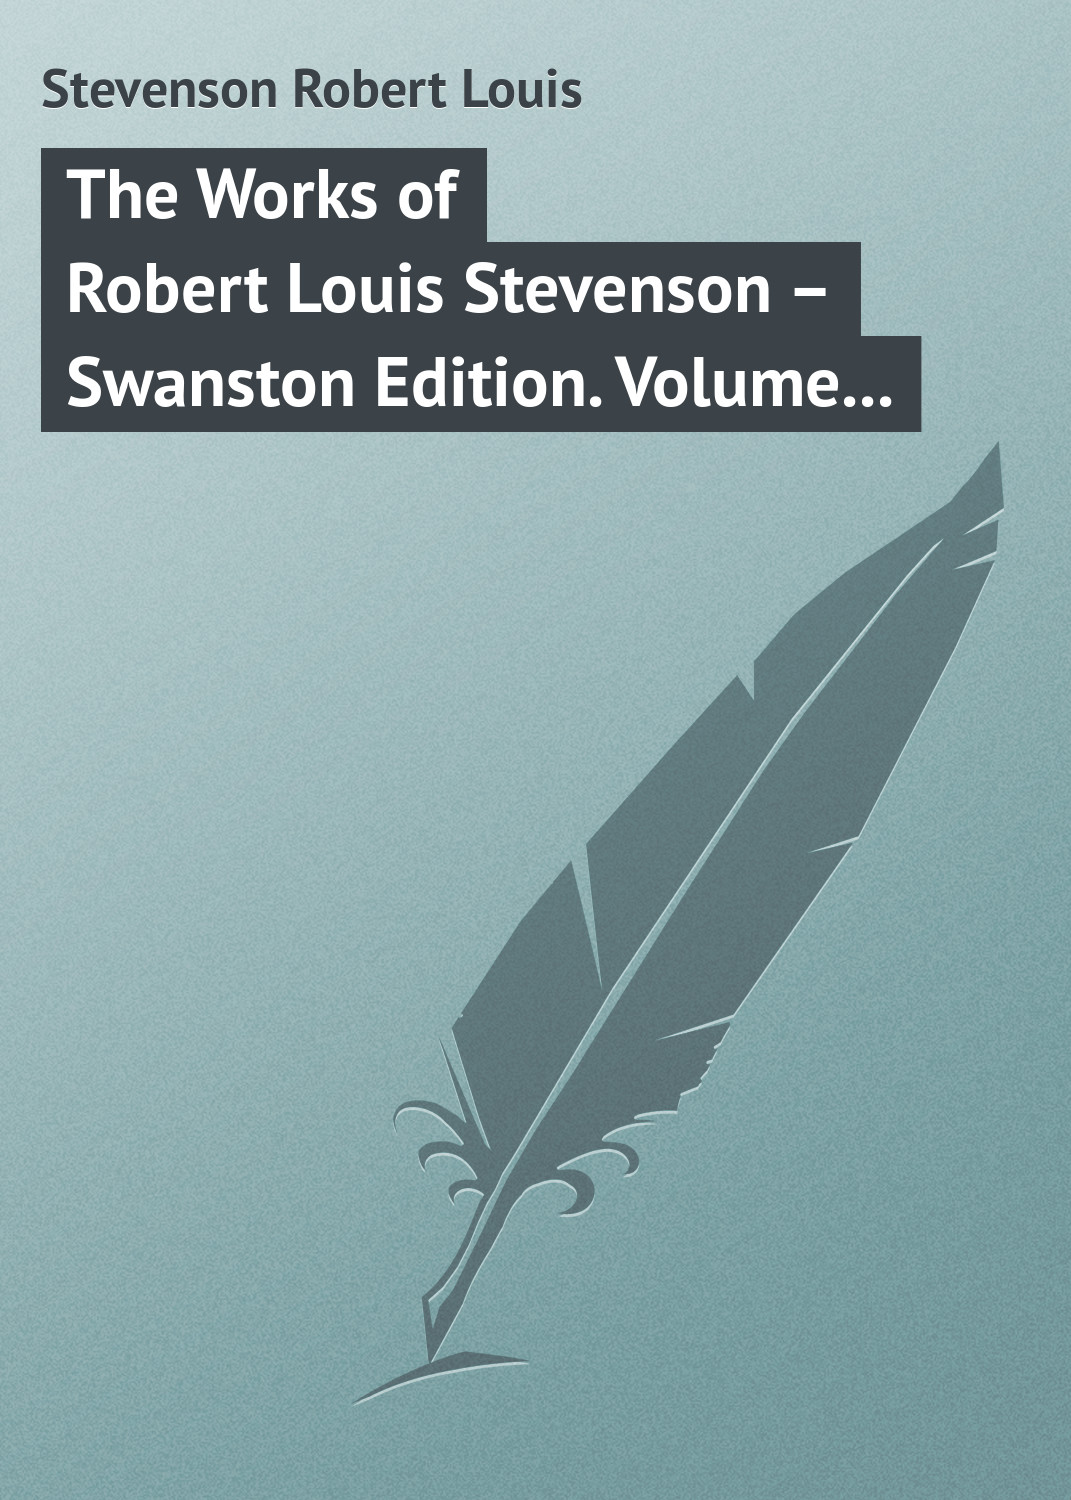 цена на Роберт Льюис Стивенсон The Works of Robert Louis Stevenson – Swanston Edition. Volume 10